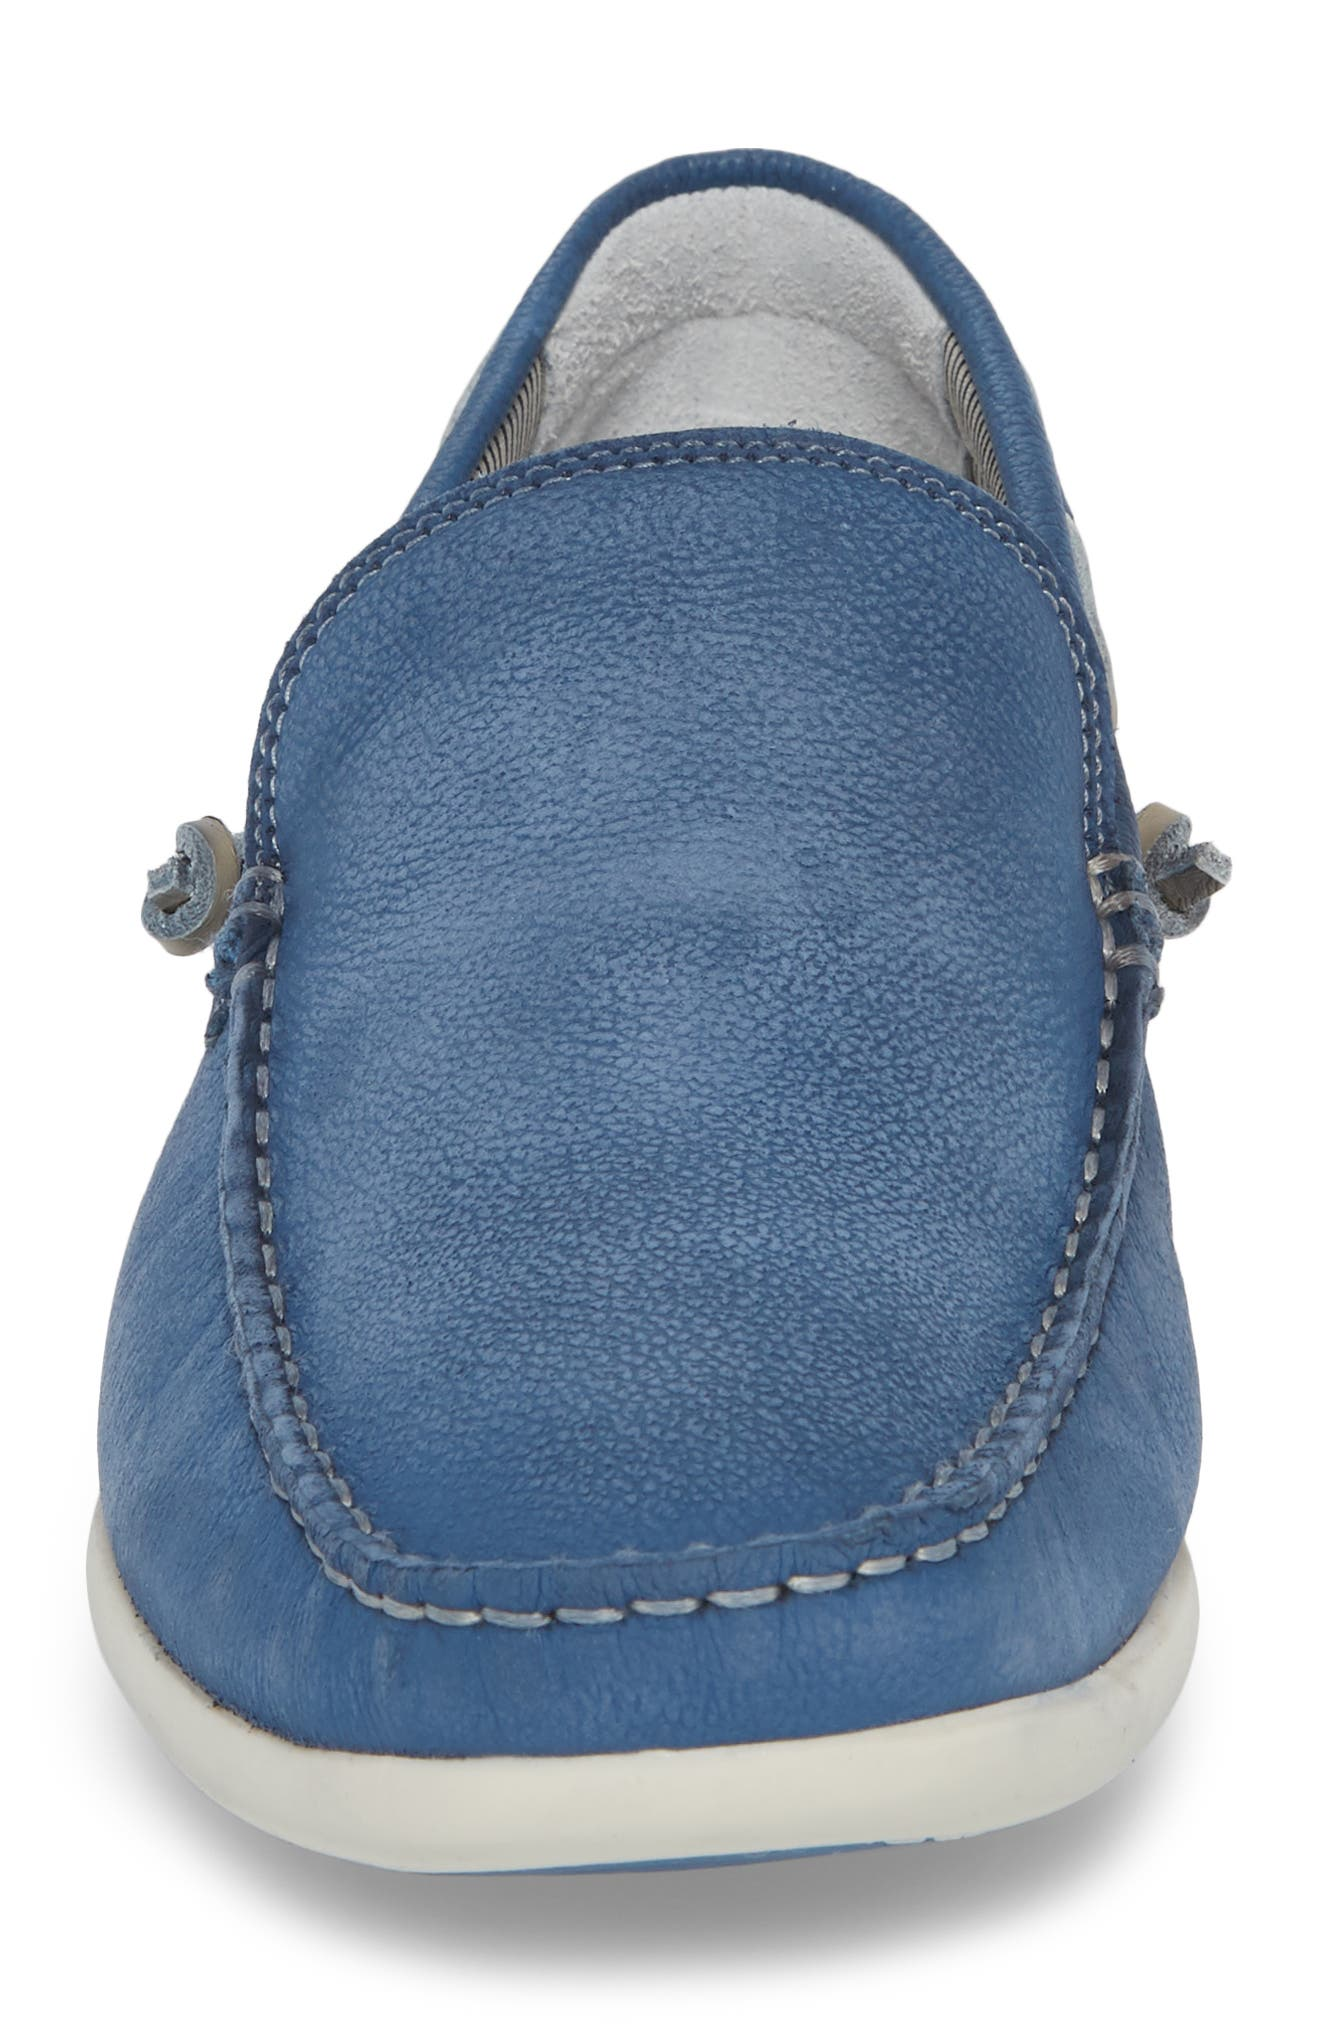 Sonoma Slip-On,                             Alternate thumbnail 4, color,                             Blue Leather